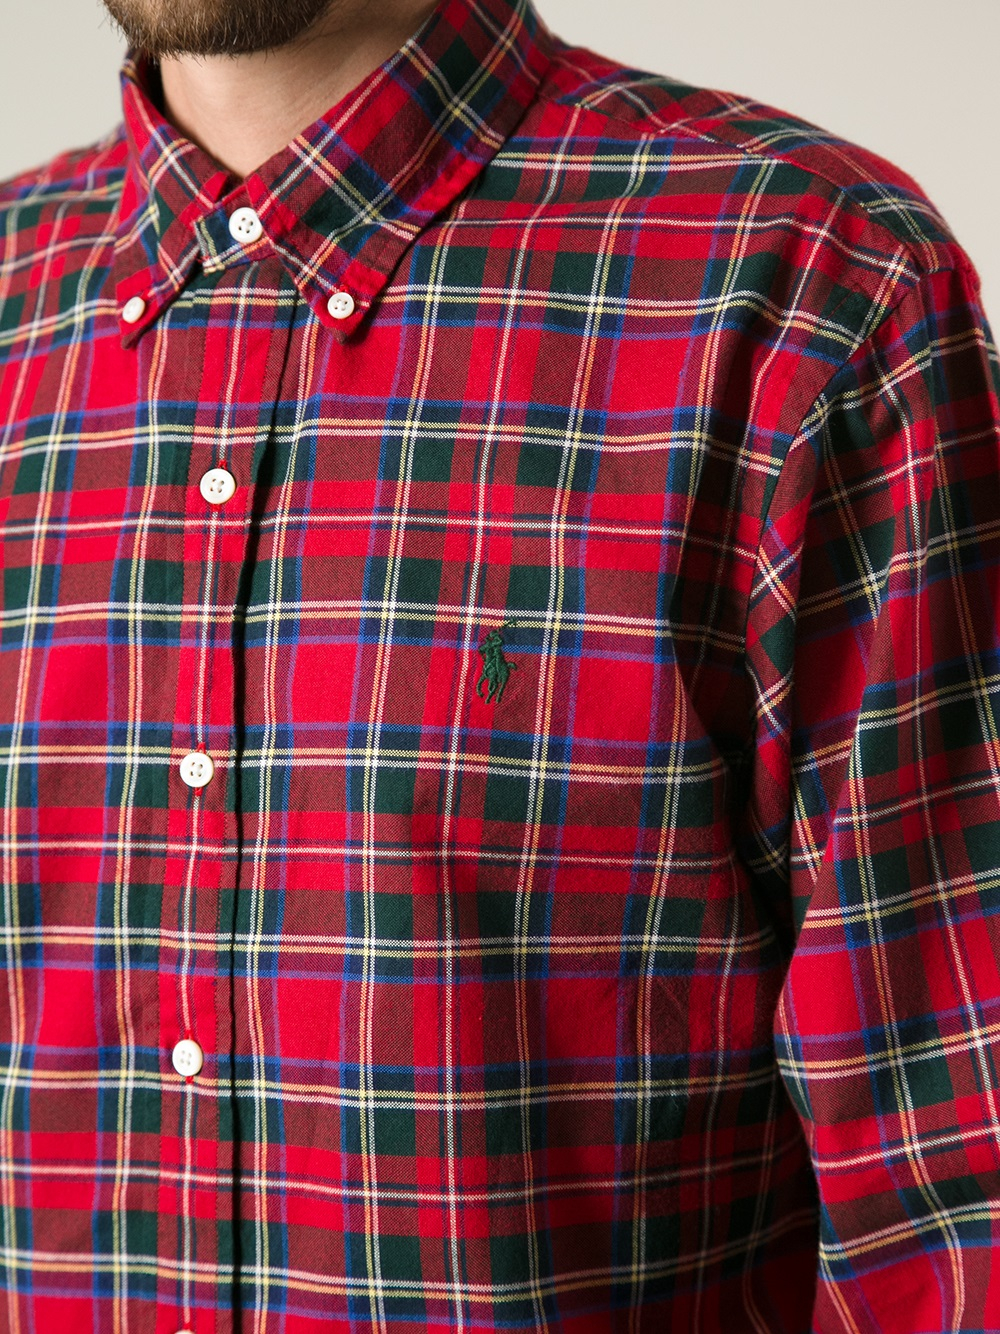 8bfb3b87c8 ... good lyst polo ralph lauren plaid button down shirt in red for men  32923 a6d59